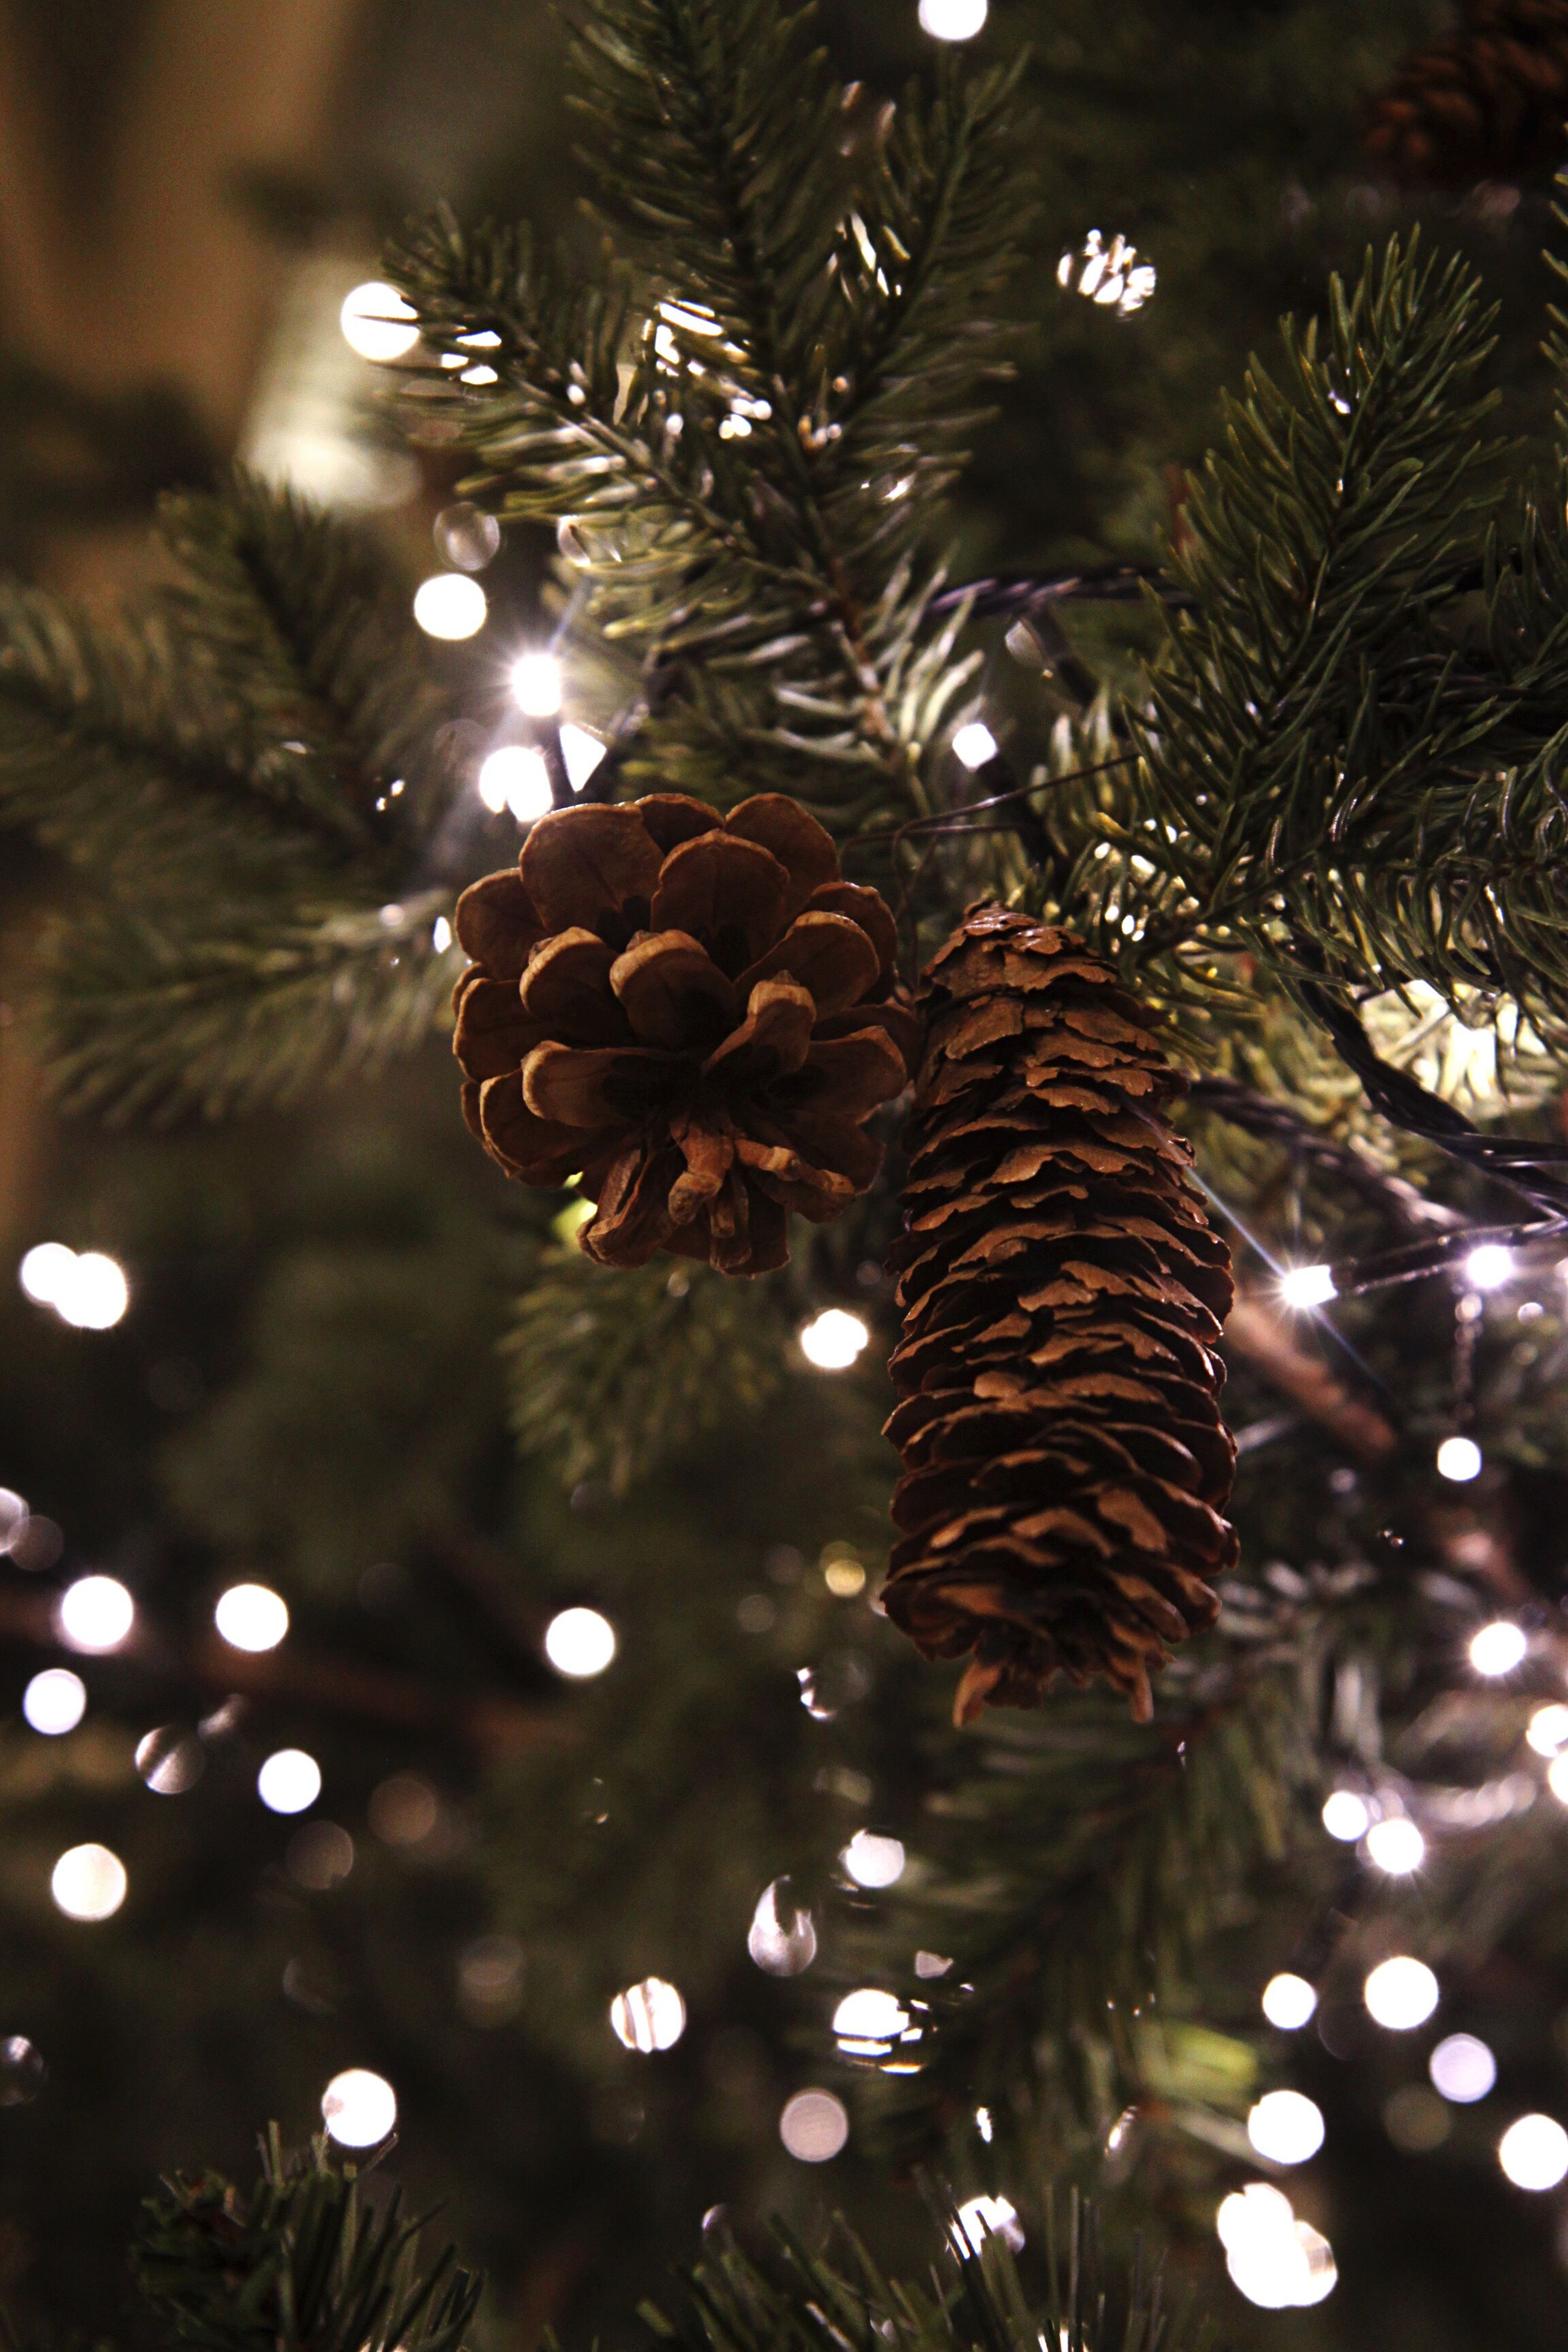 tree, christmas tree, christmas, christmas decoration, no people, low angle view, branch, close-up, nature, christmas lights, illuminated, outdoors, christmas ornament, night, sky